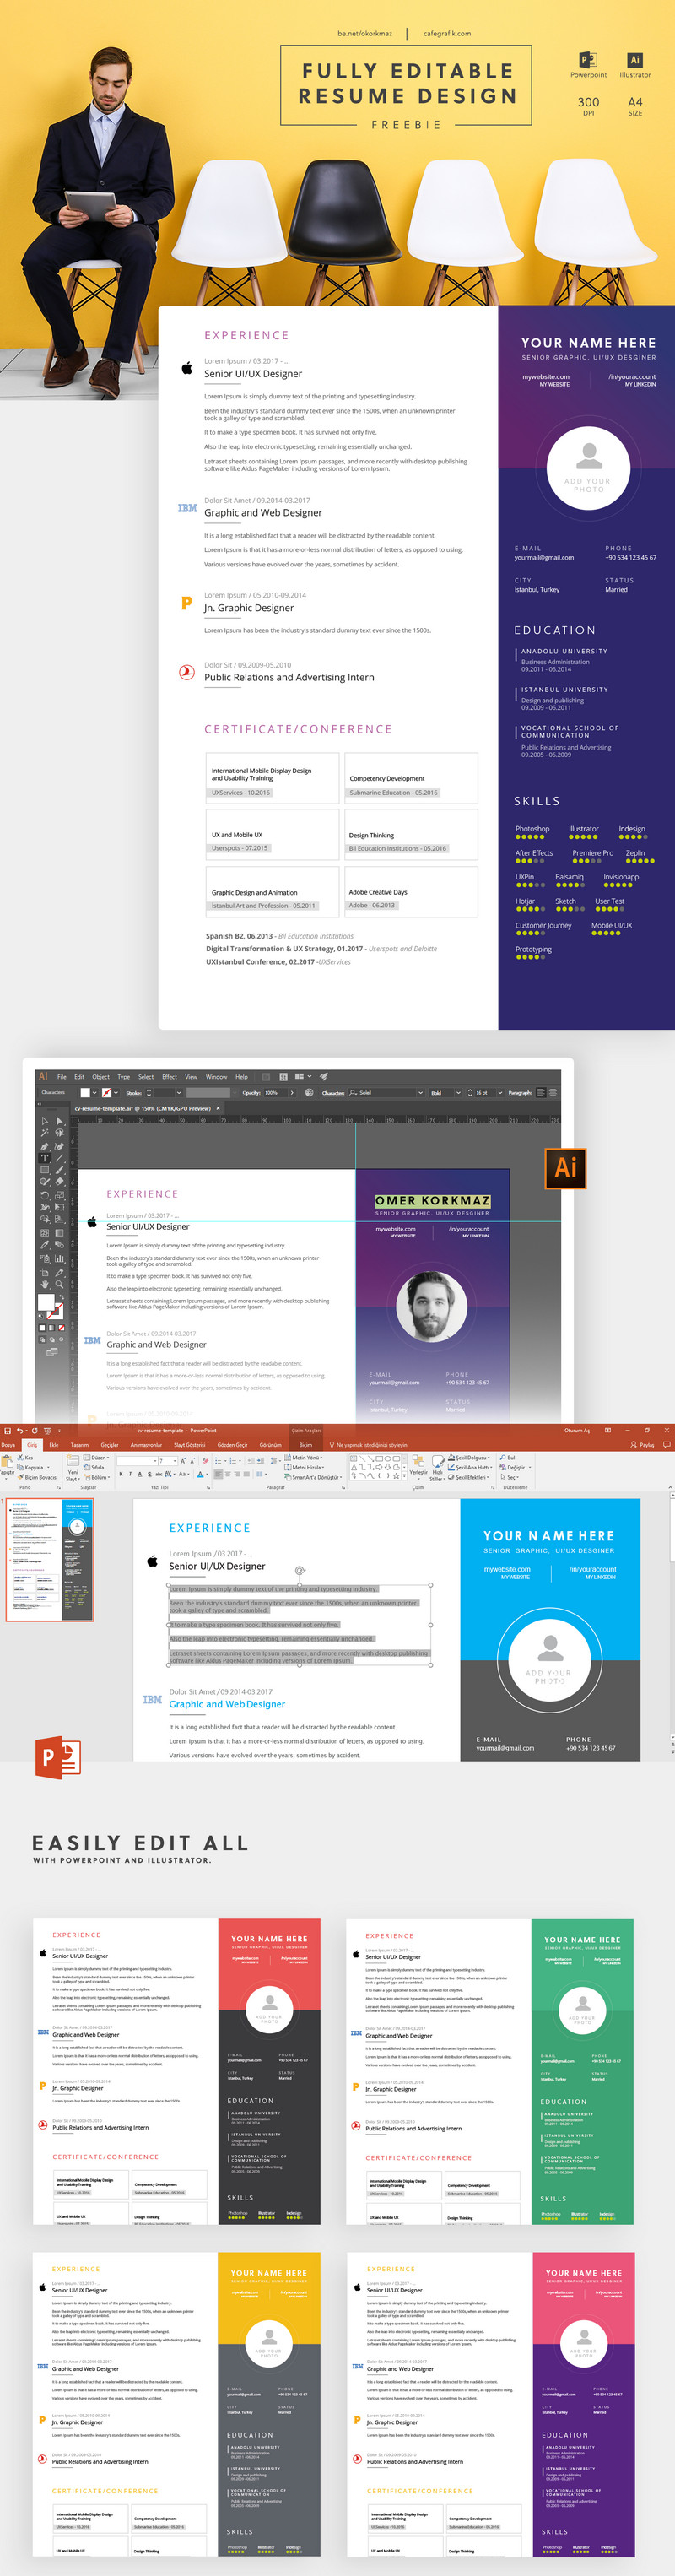 Best Resume Format Ppt